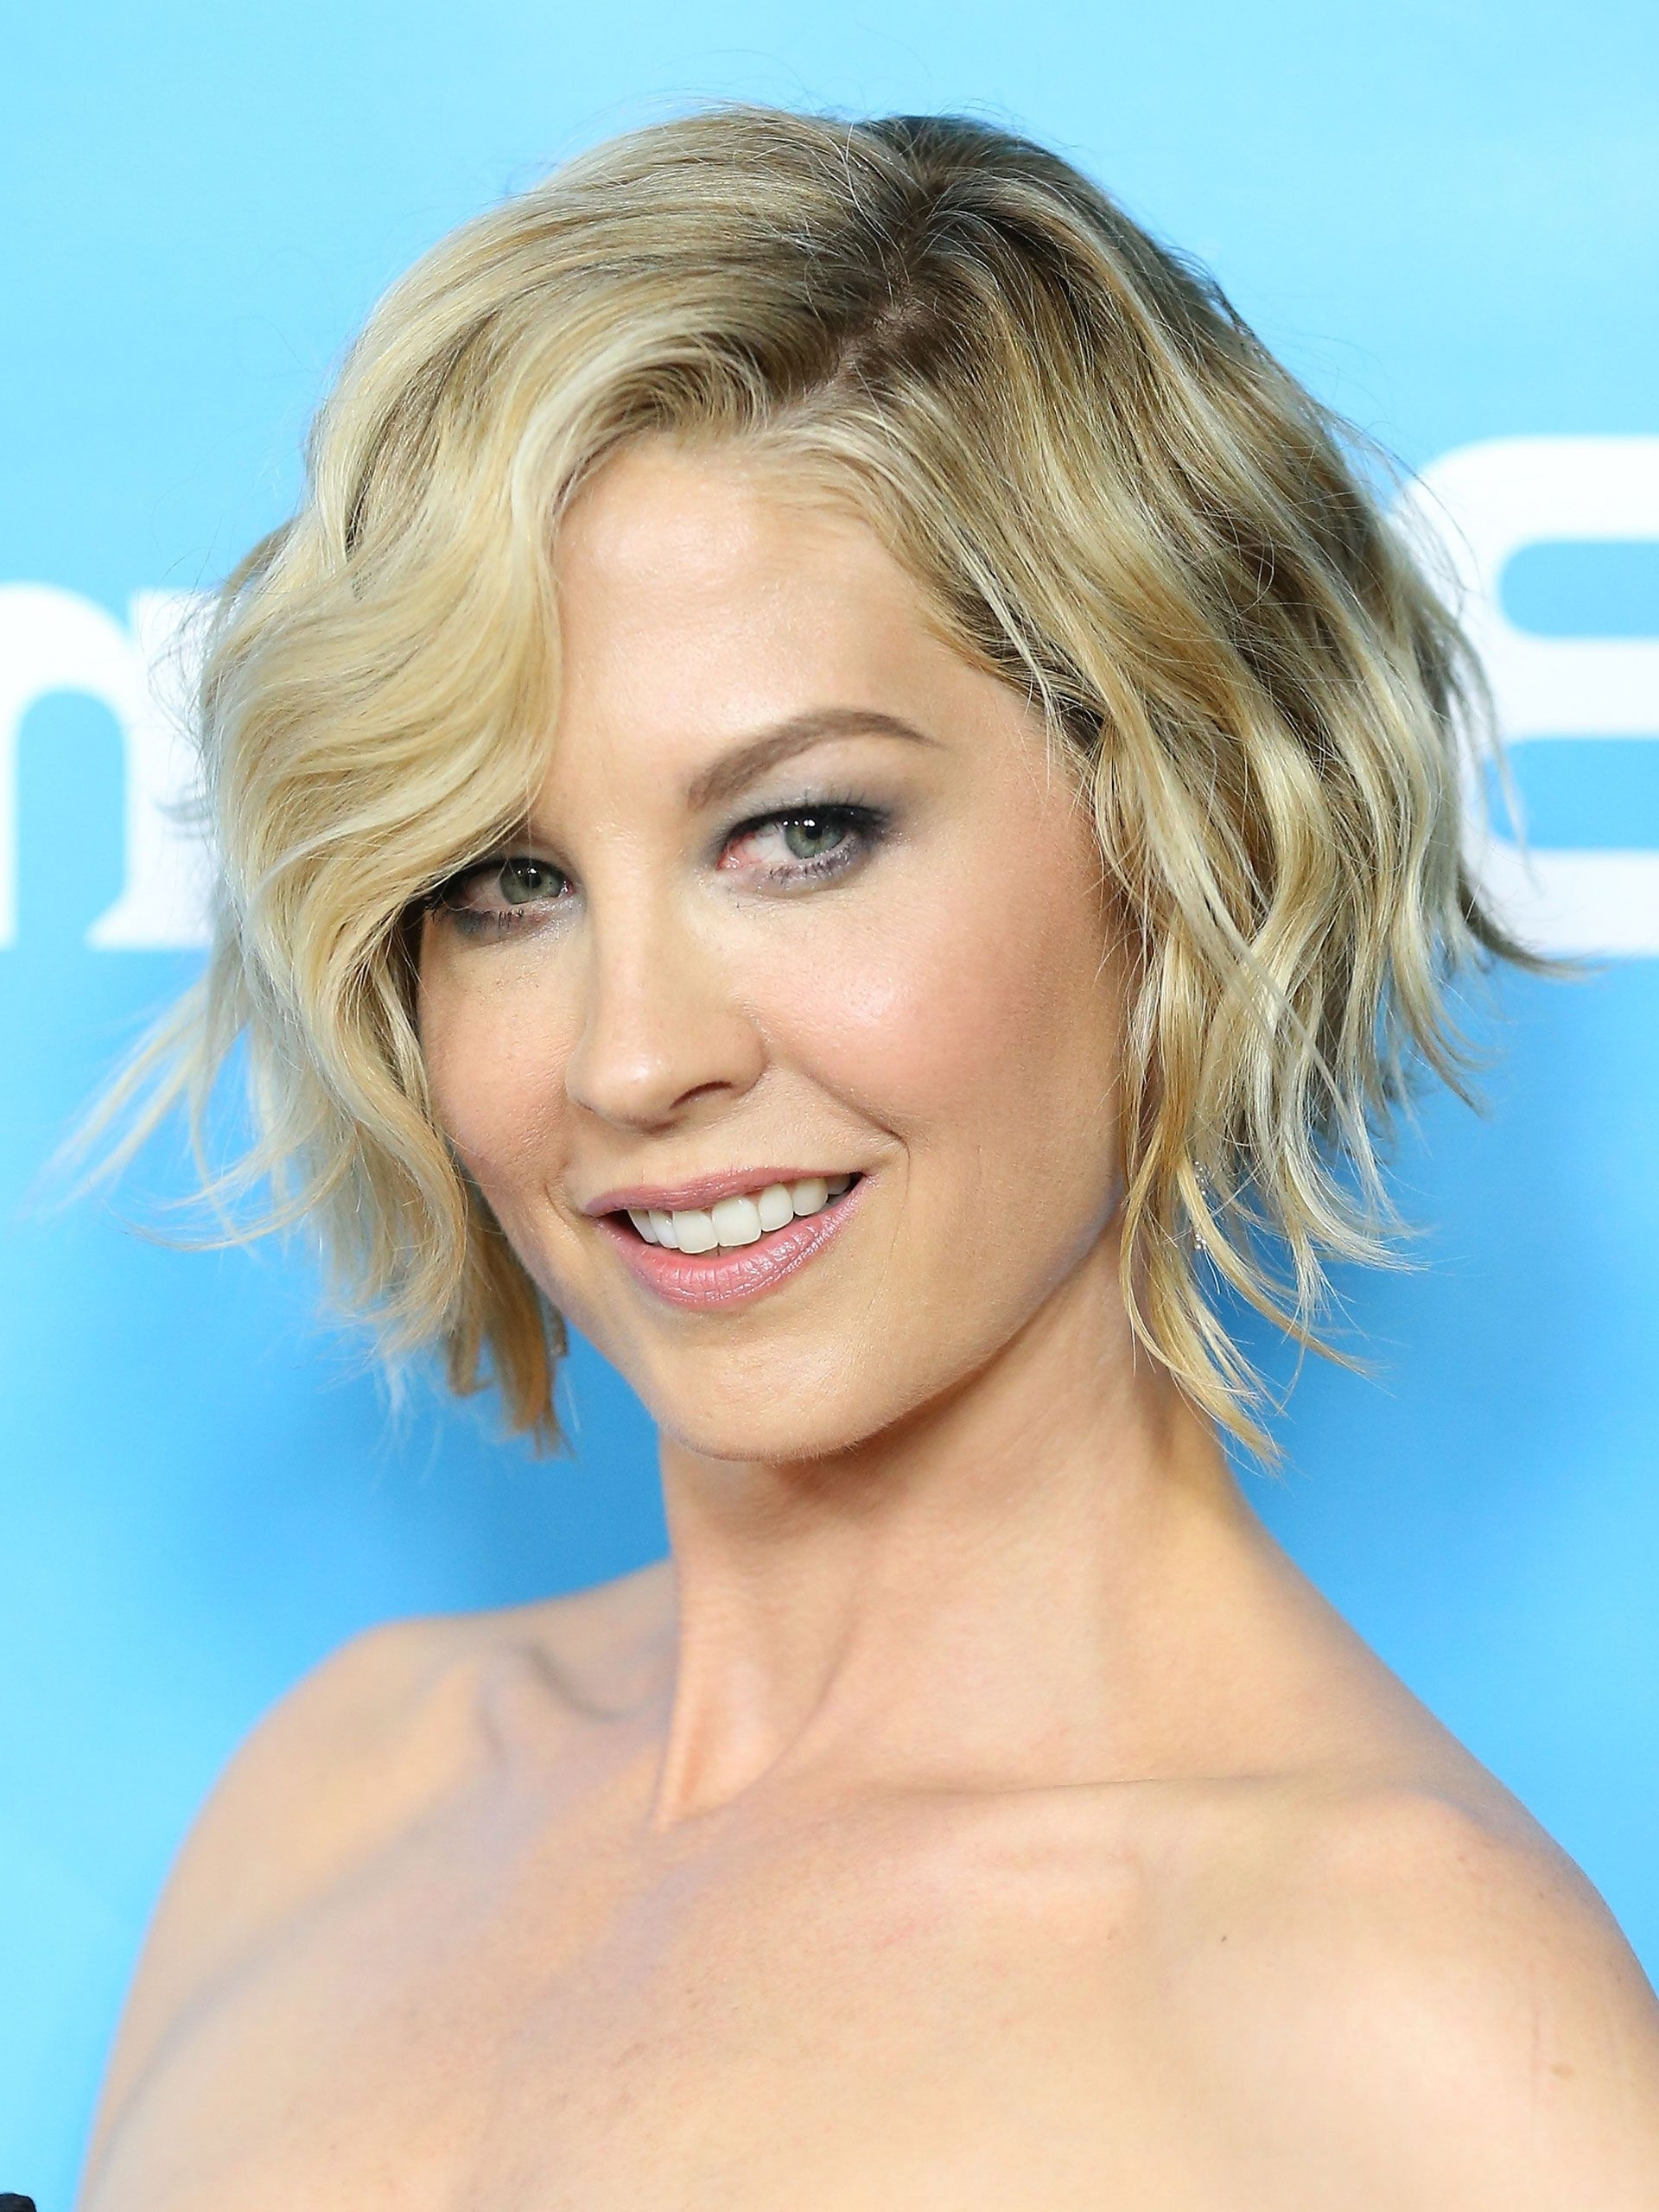 Widely Used Growing Out Pixie Hairstyles For Curly Hair Regarding How To Grow Out Your Hair – Celebs Growing Out Short Hair (View 20 of 20)